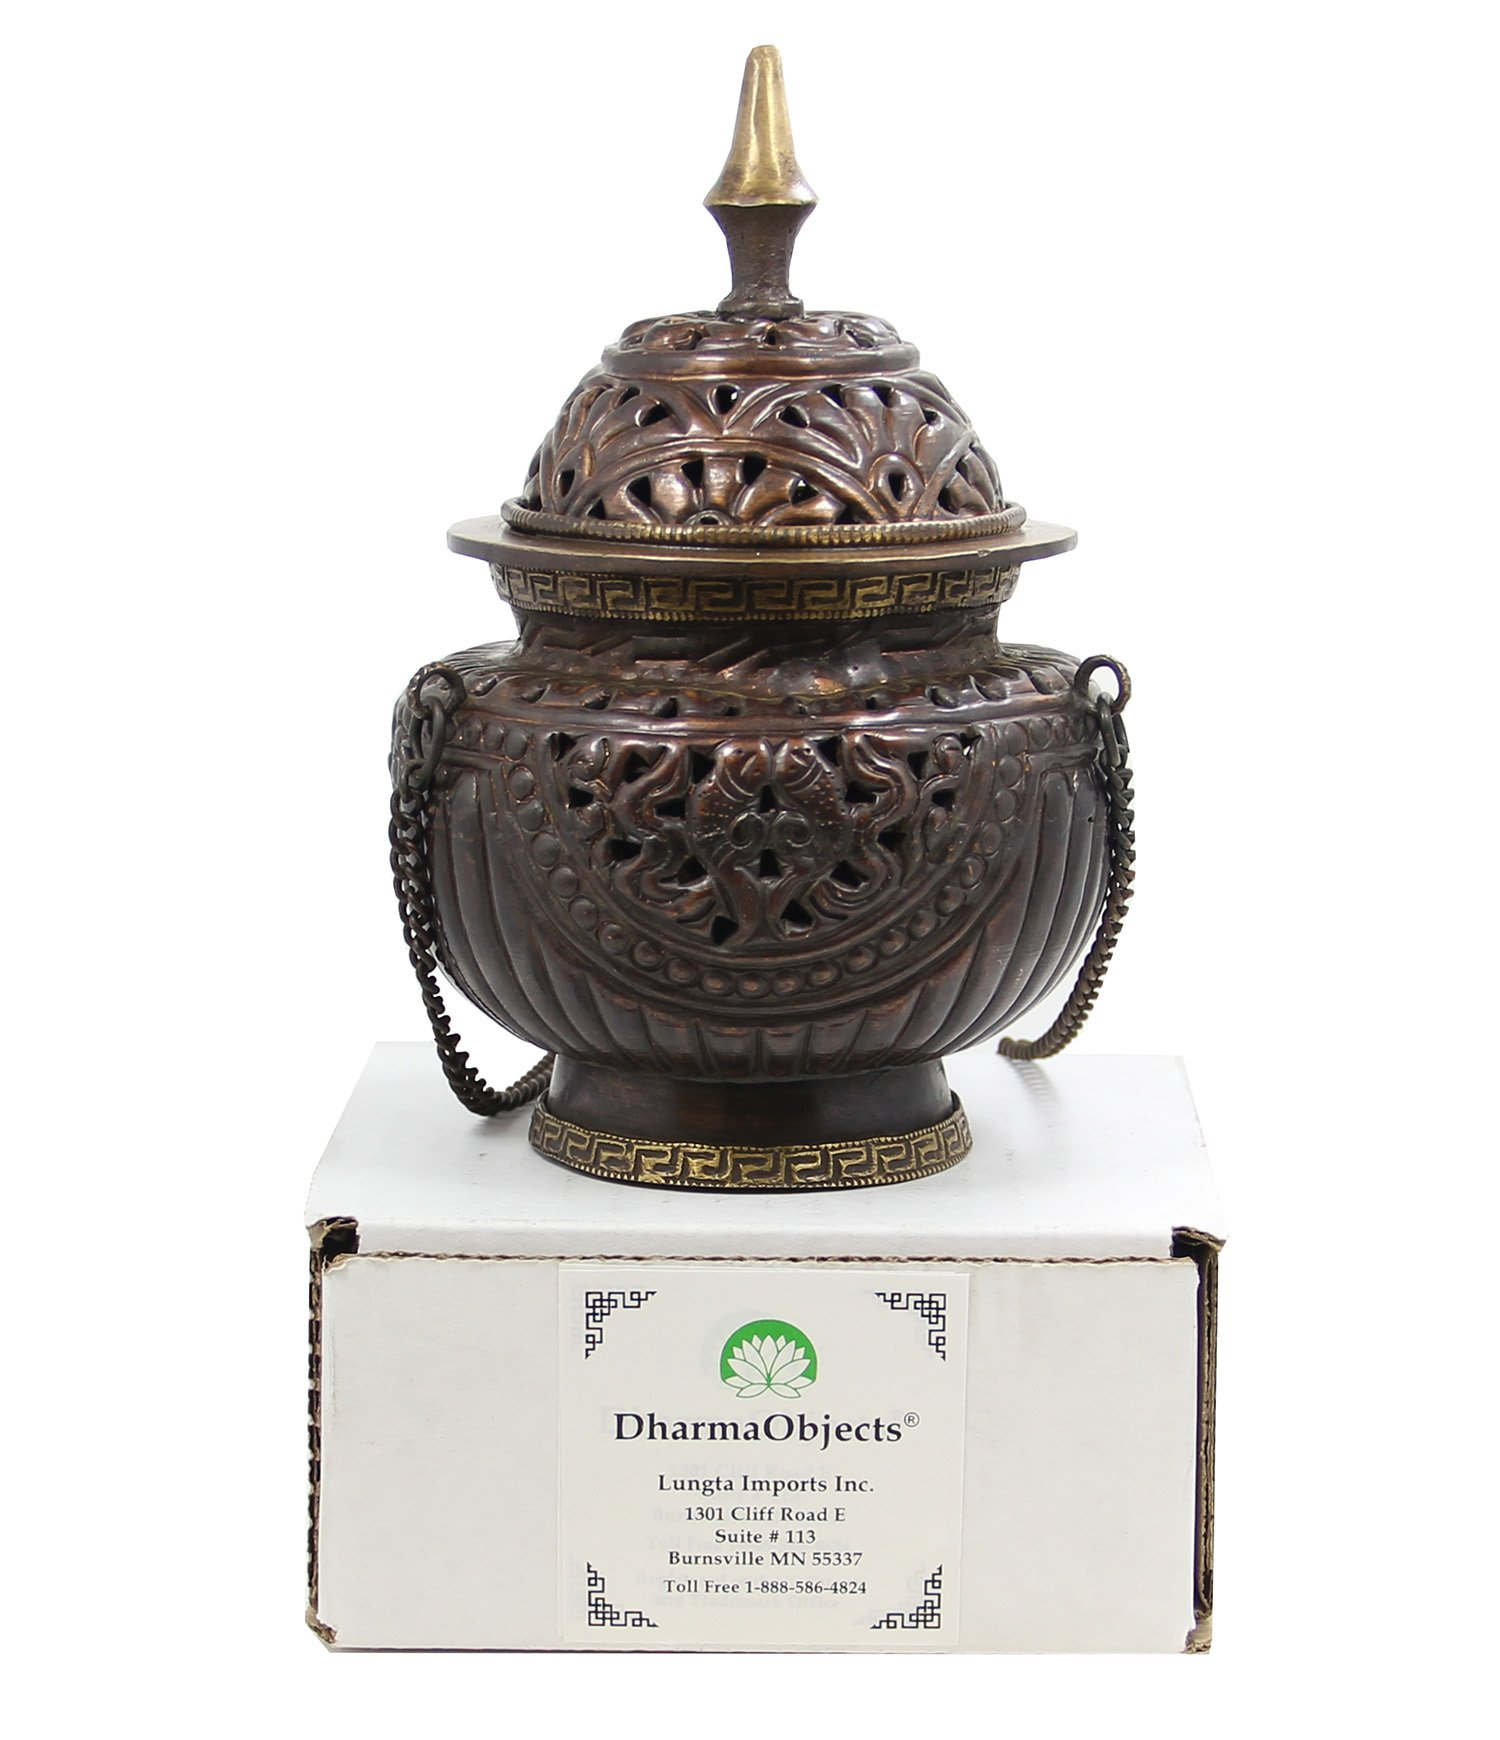 DharmaObjects Tibetan Hanging Incense Burner ~ Copper w/Tibetan Symbols ~ 6'' High by DharmaObjects (Image #4)